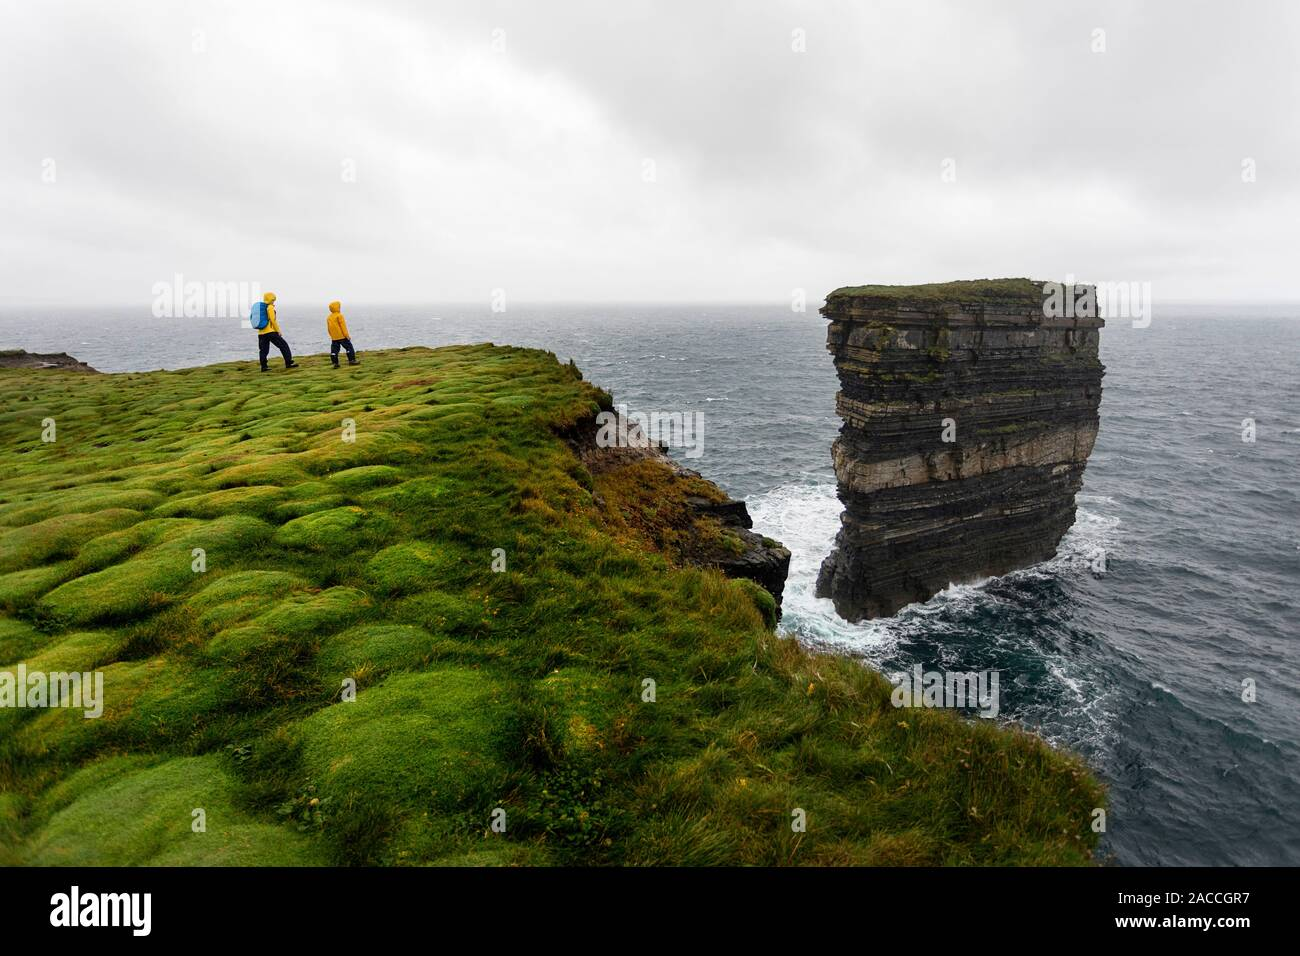 Downpatrick Head, Ballycastle, County Mayo, Donegal, Connacht region, Ireland, Europe. Mother and s watching the sea stack from the top of the cliff. Stock Photo